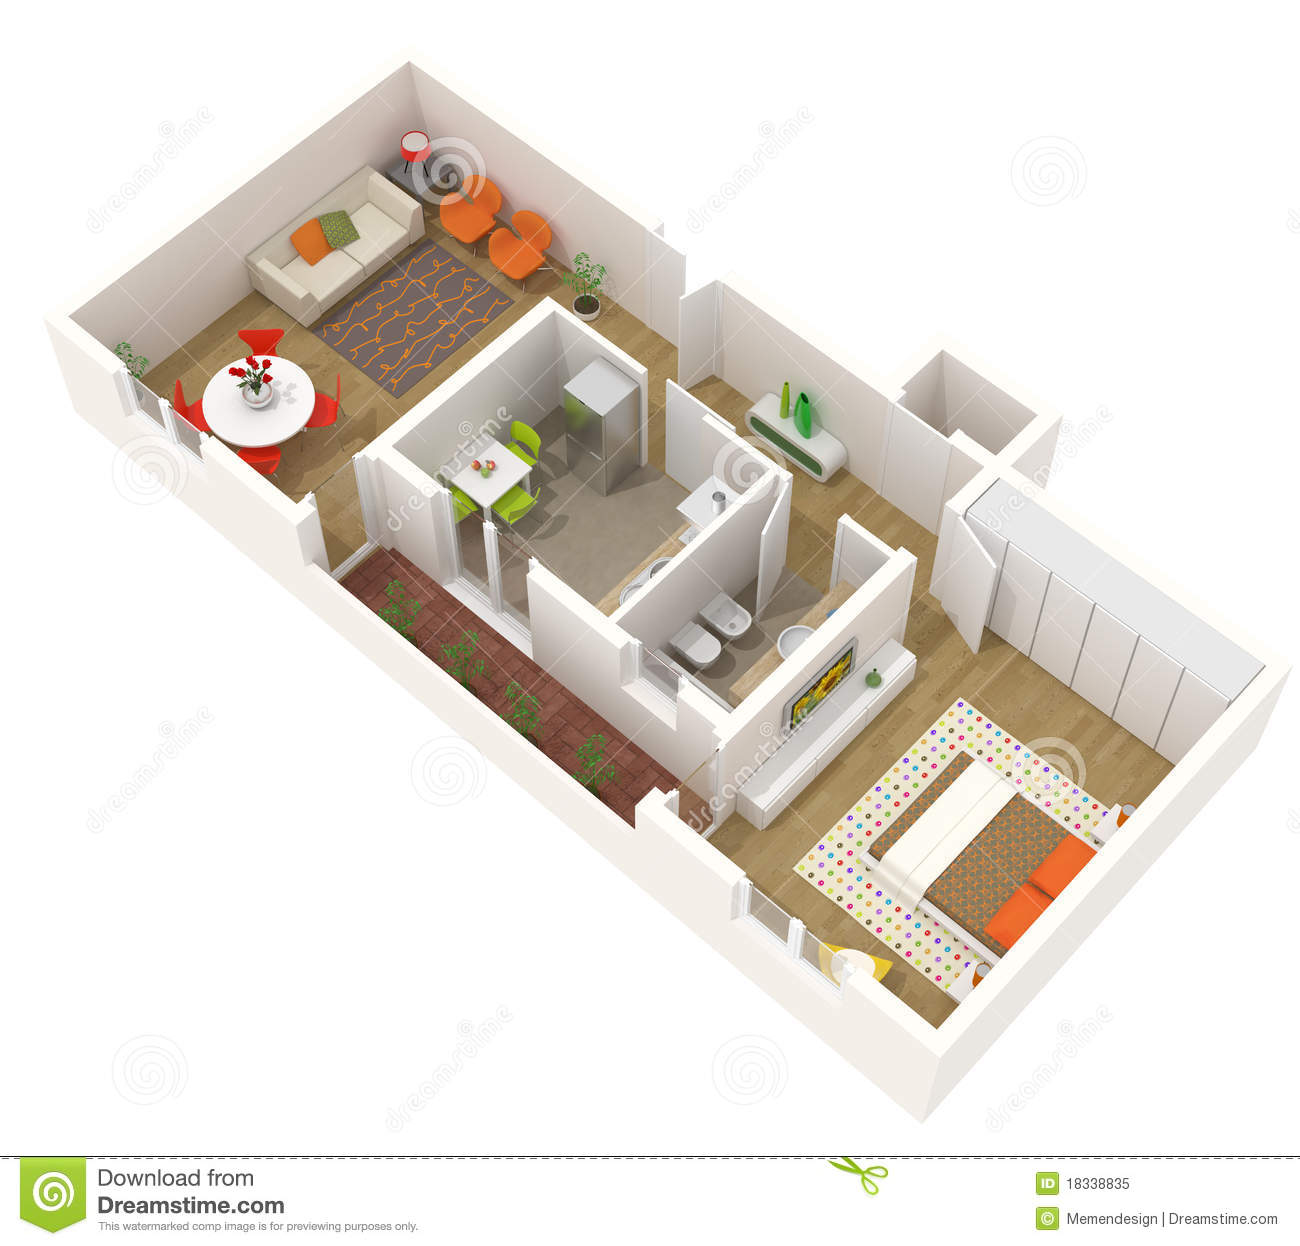 Apartment design 3d floor plan stock illustration for Apartment design 3d